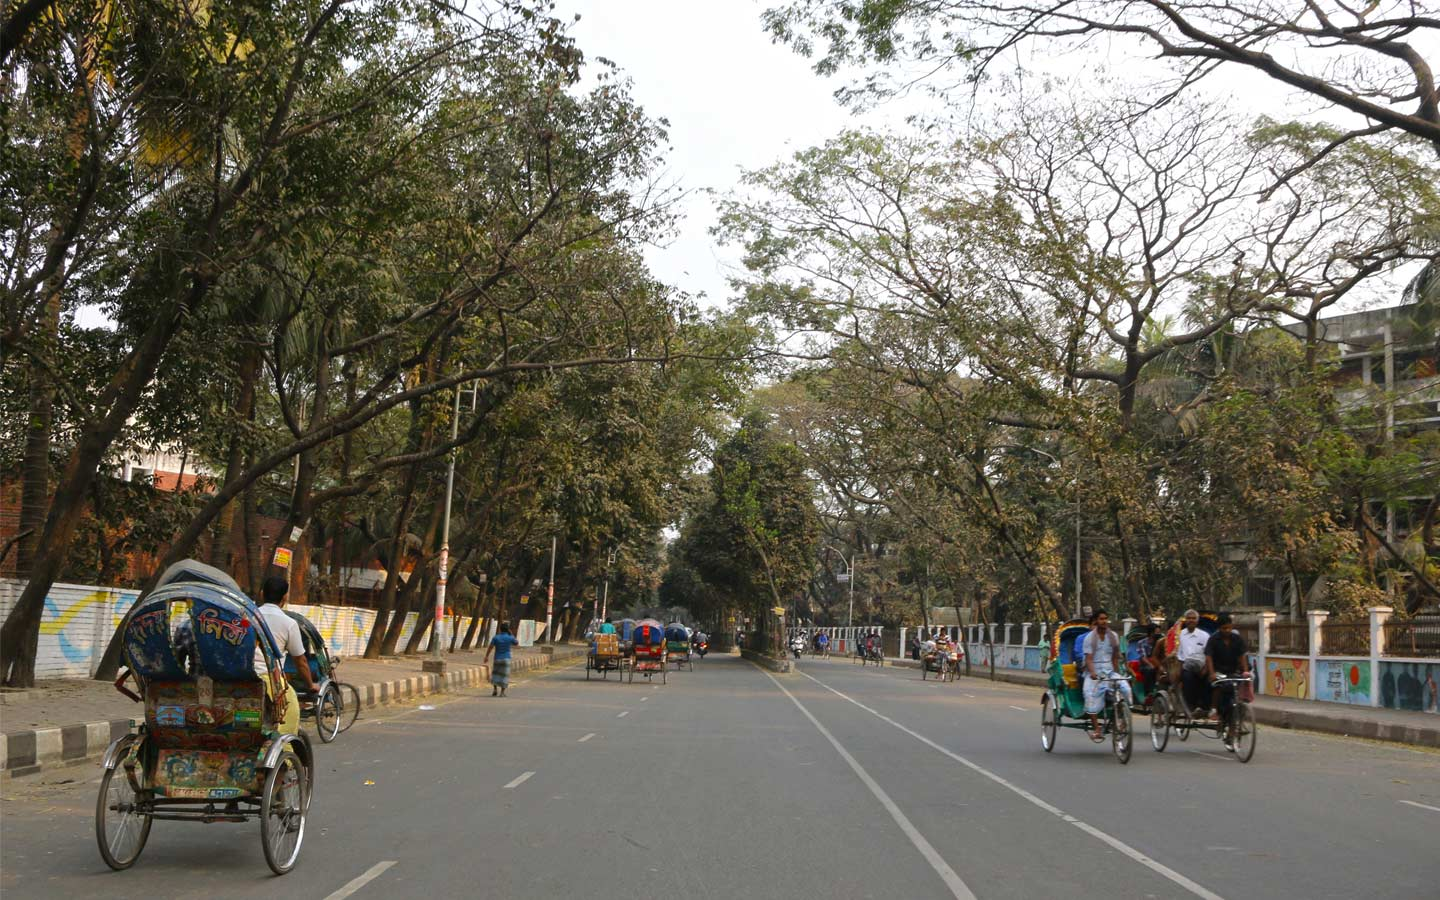 Rickshaw is one of the convenient mode of transportation